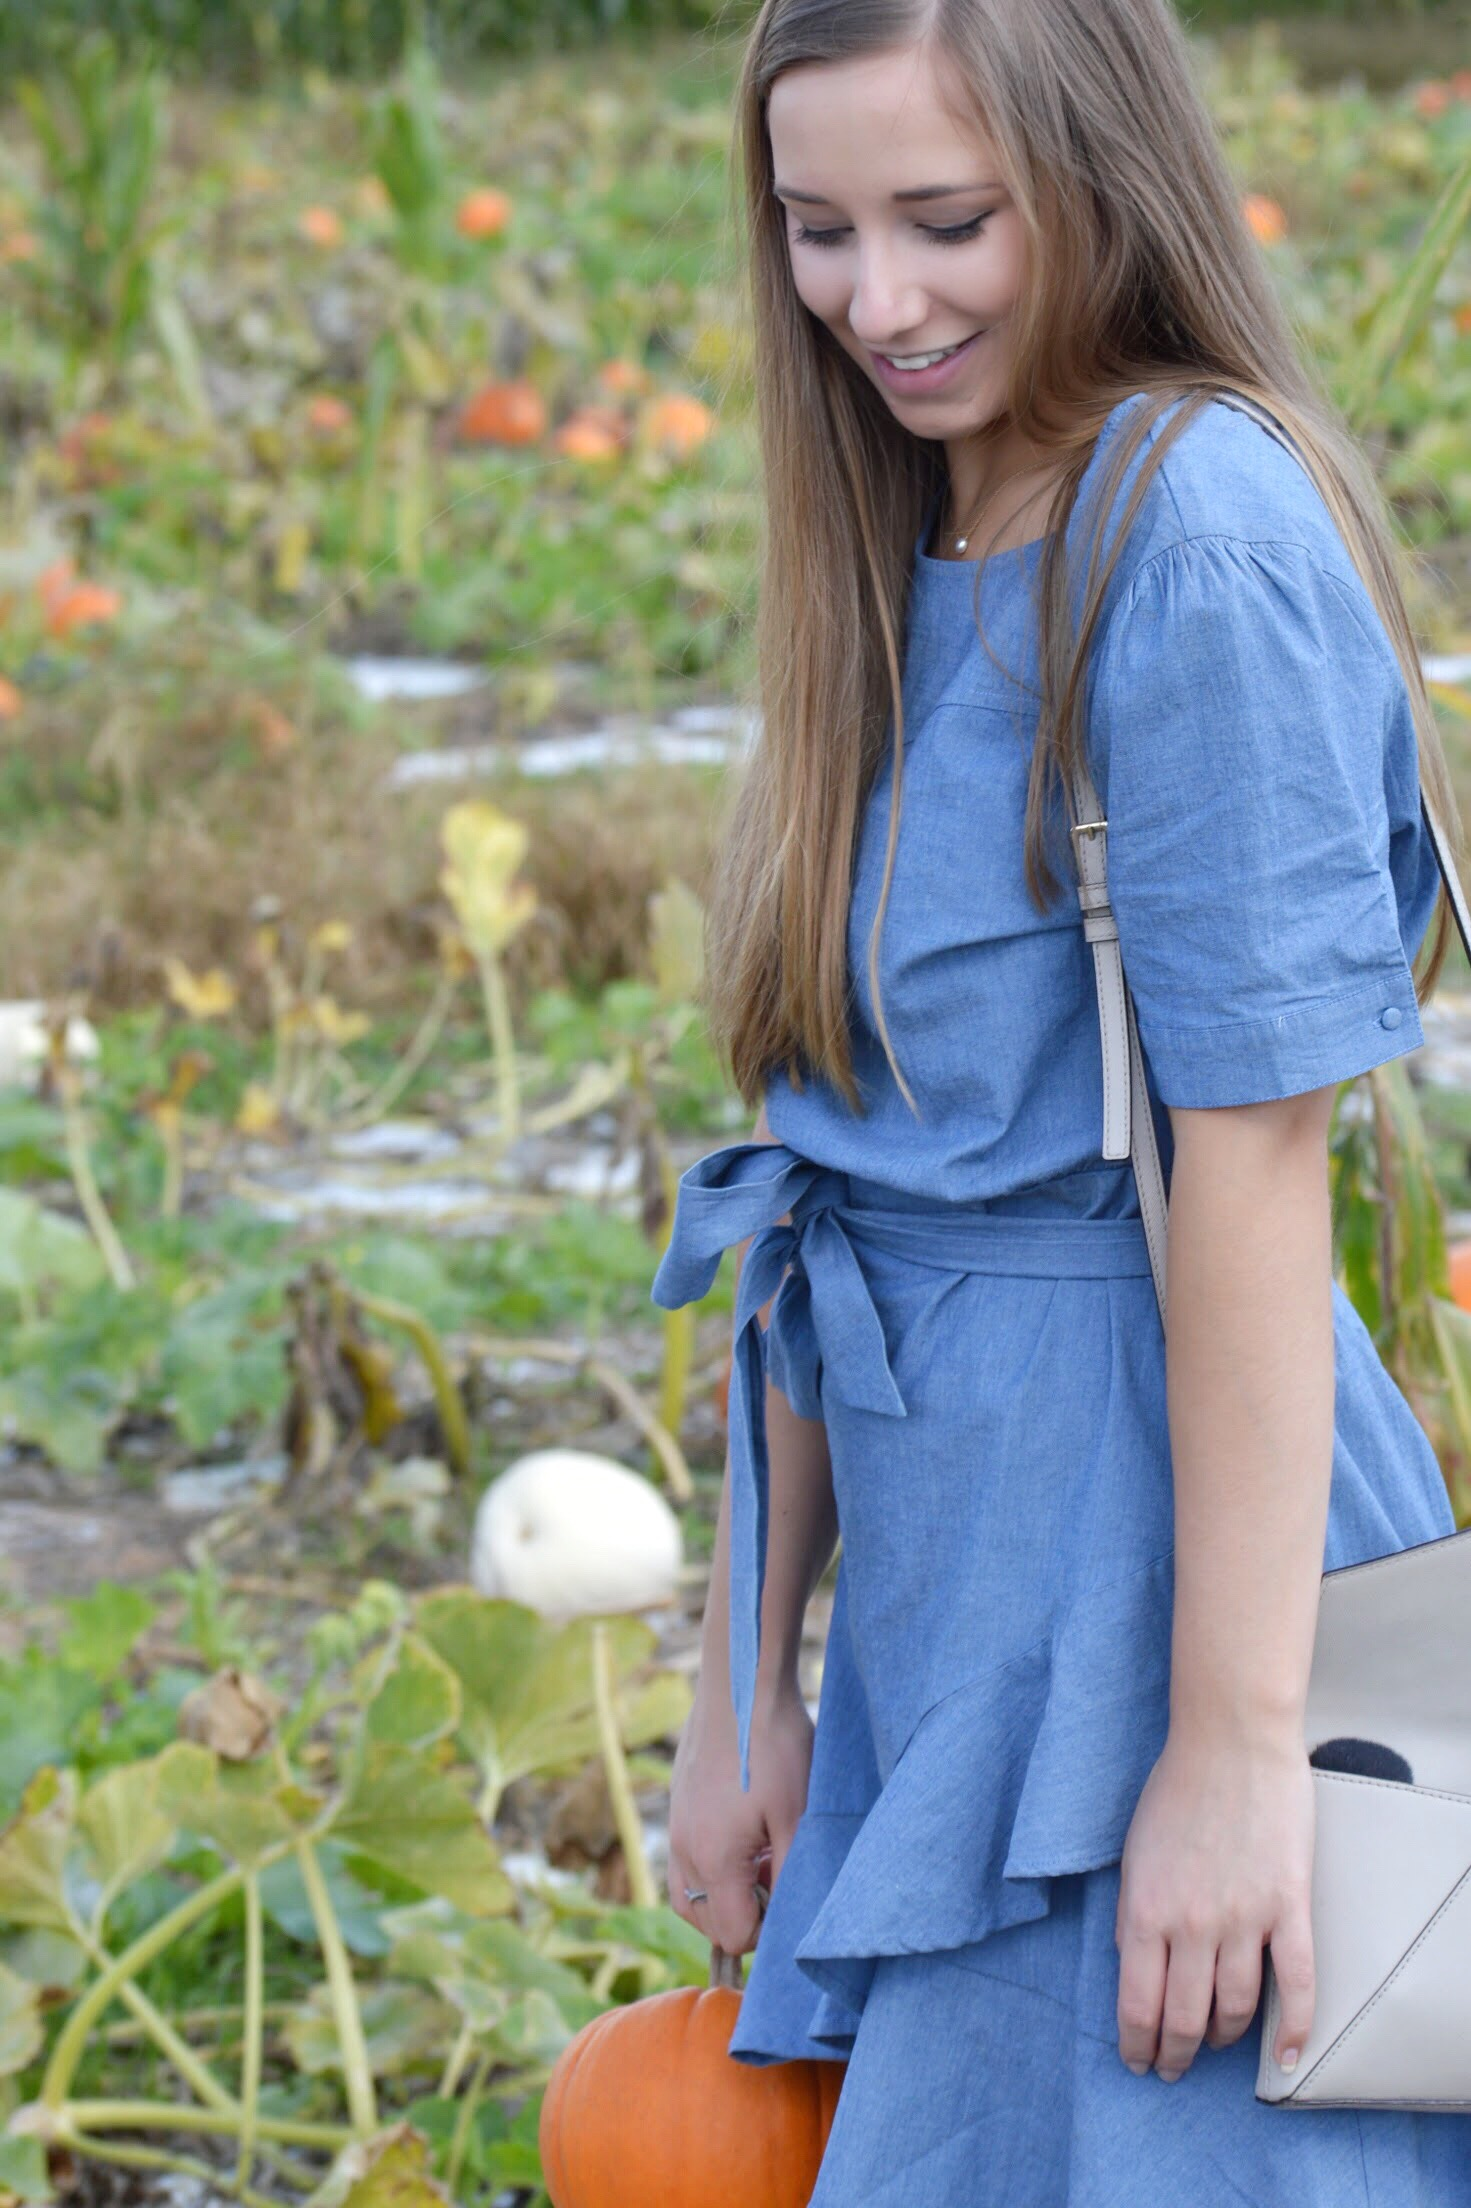 Fall Date at the Pumpkin Patch + The Perfect Ruffled Chambray Dress